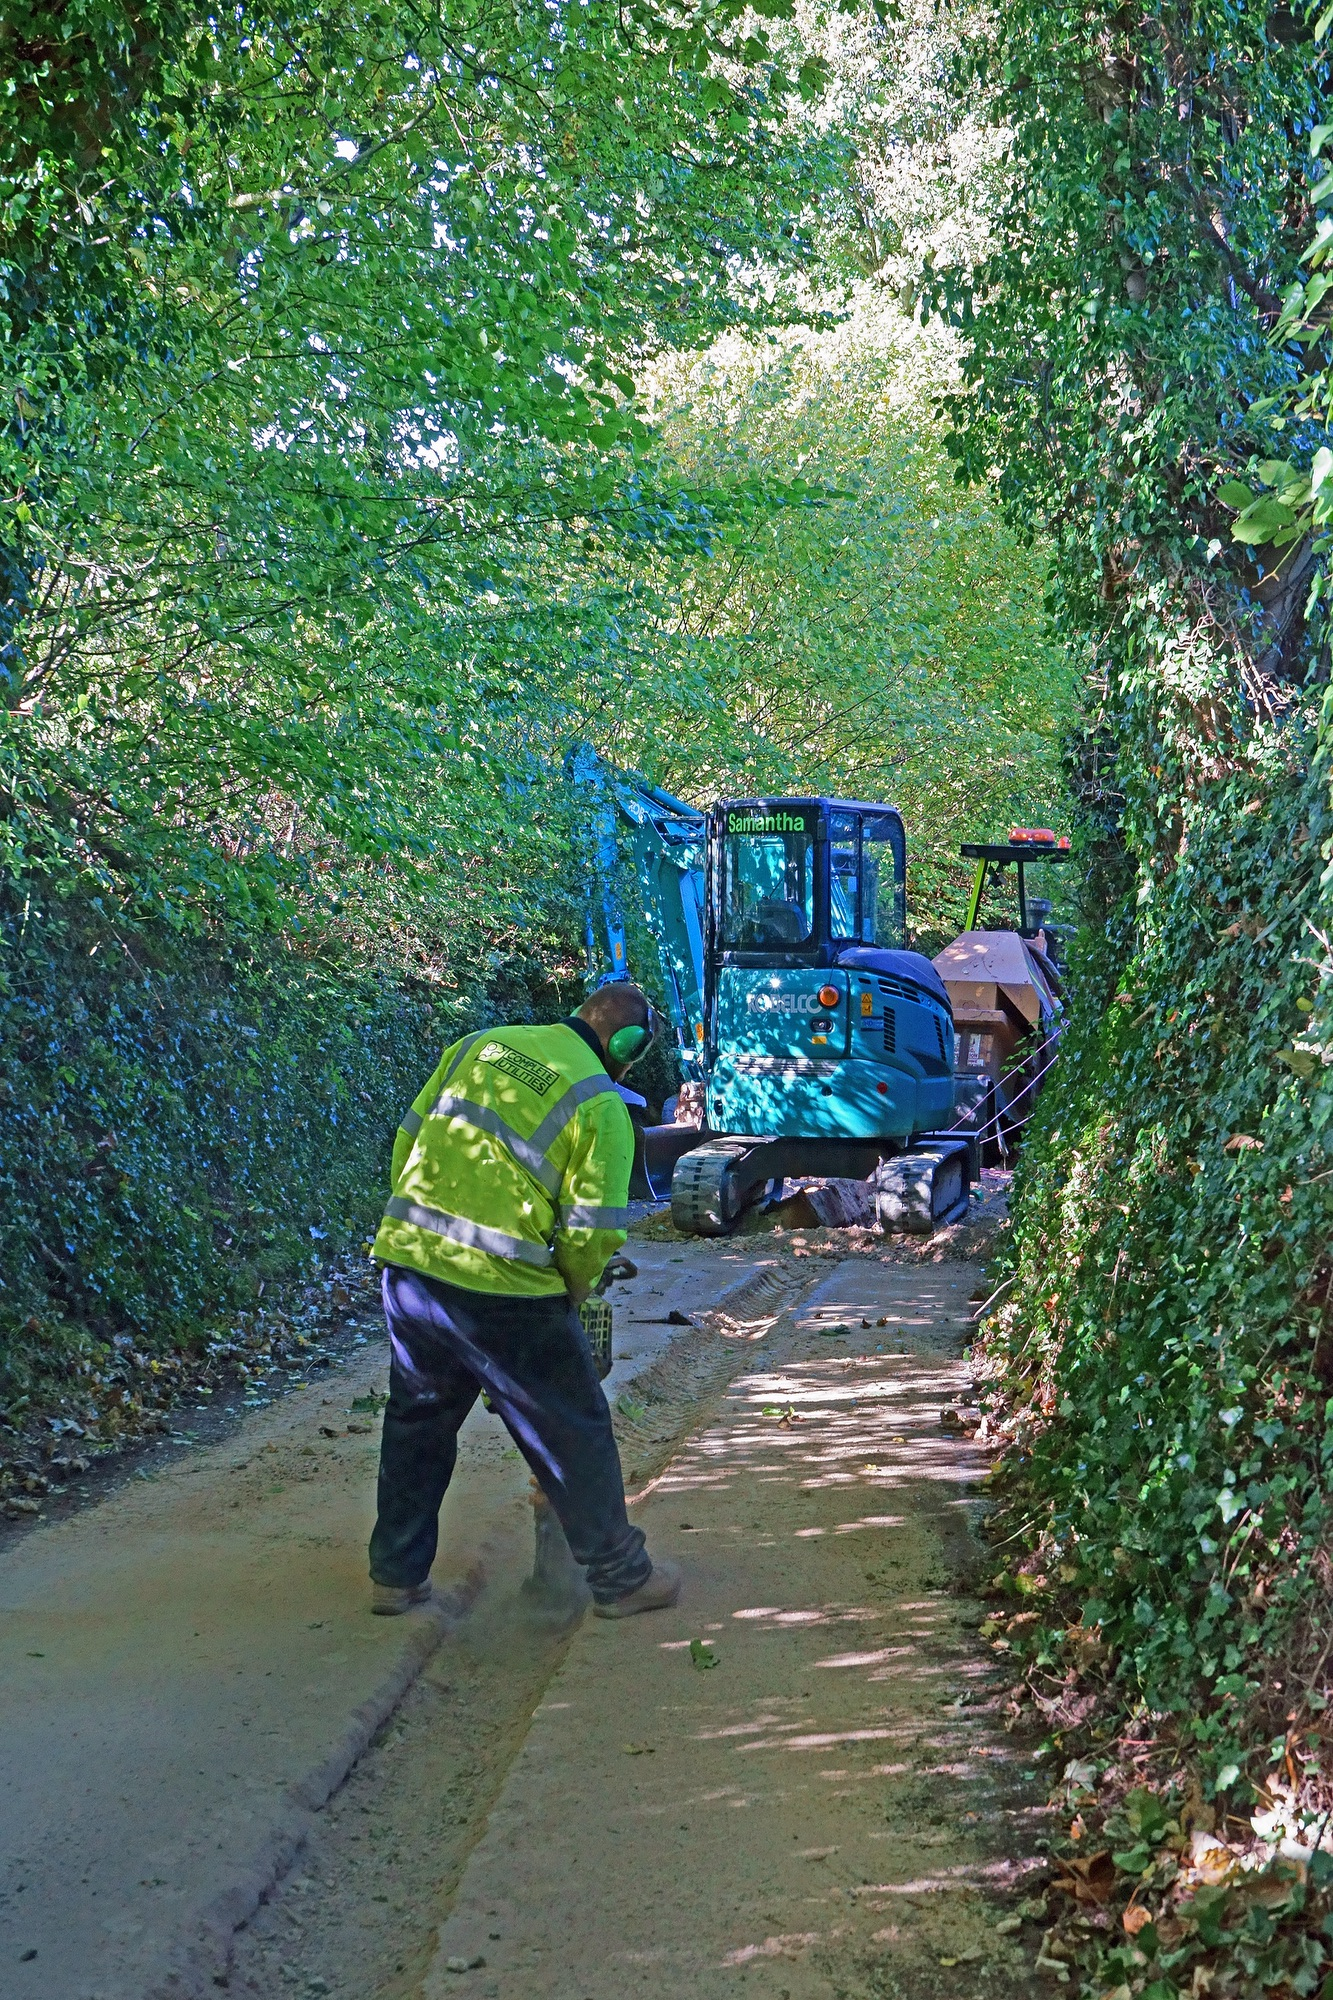 SS_EDITORIAL_ONLY Painswick, Gloucestershire, UK, October 4th, 2018, reinstating an excavation of the highway after the laying of fibre optic cables in a very narrow country lane.